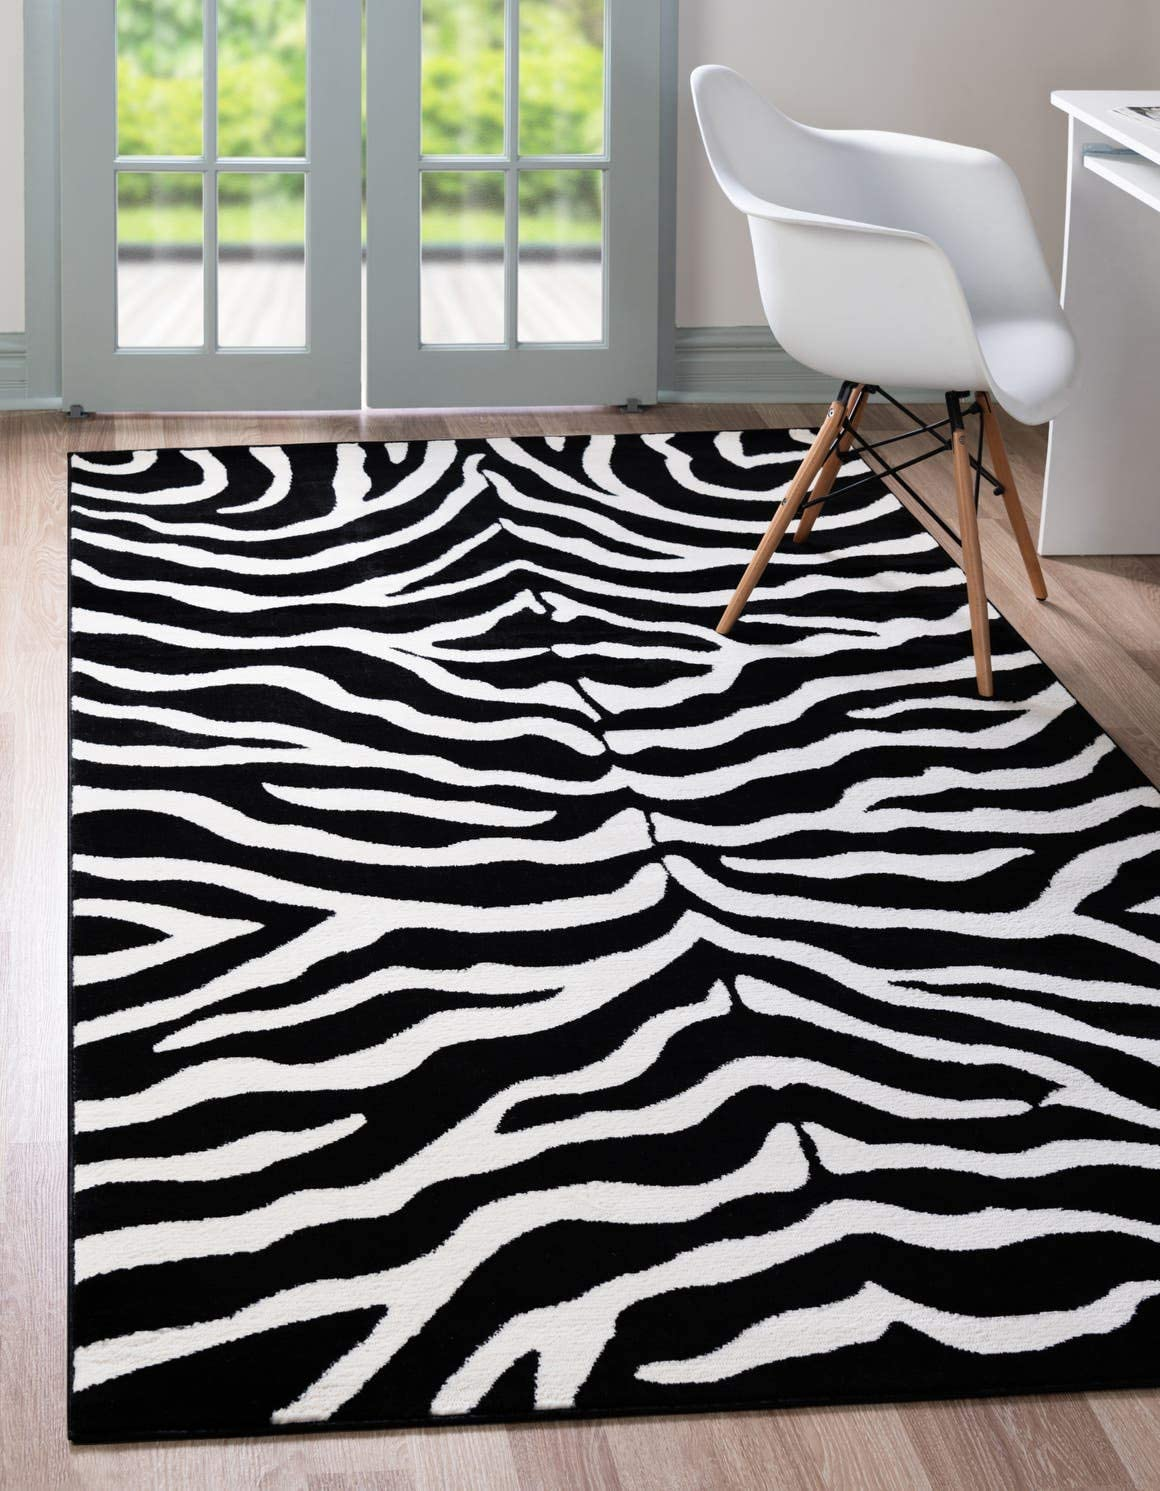 Unique Loom Wildlife Collection Zebra Animal Print Black Area Rug 5 0 x 8 0